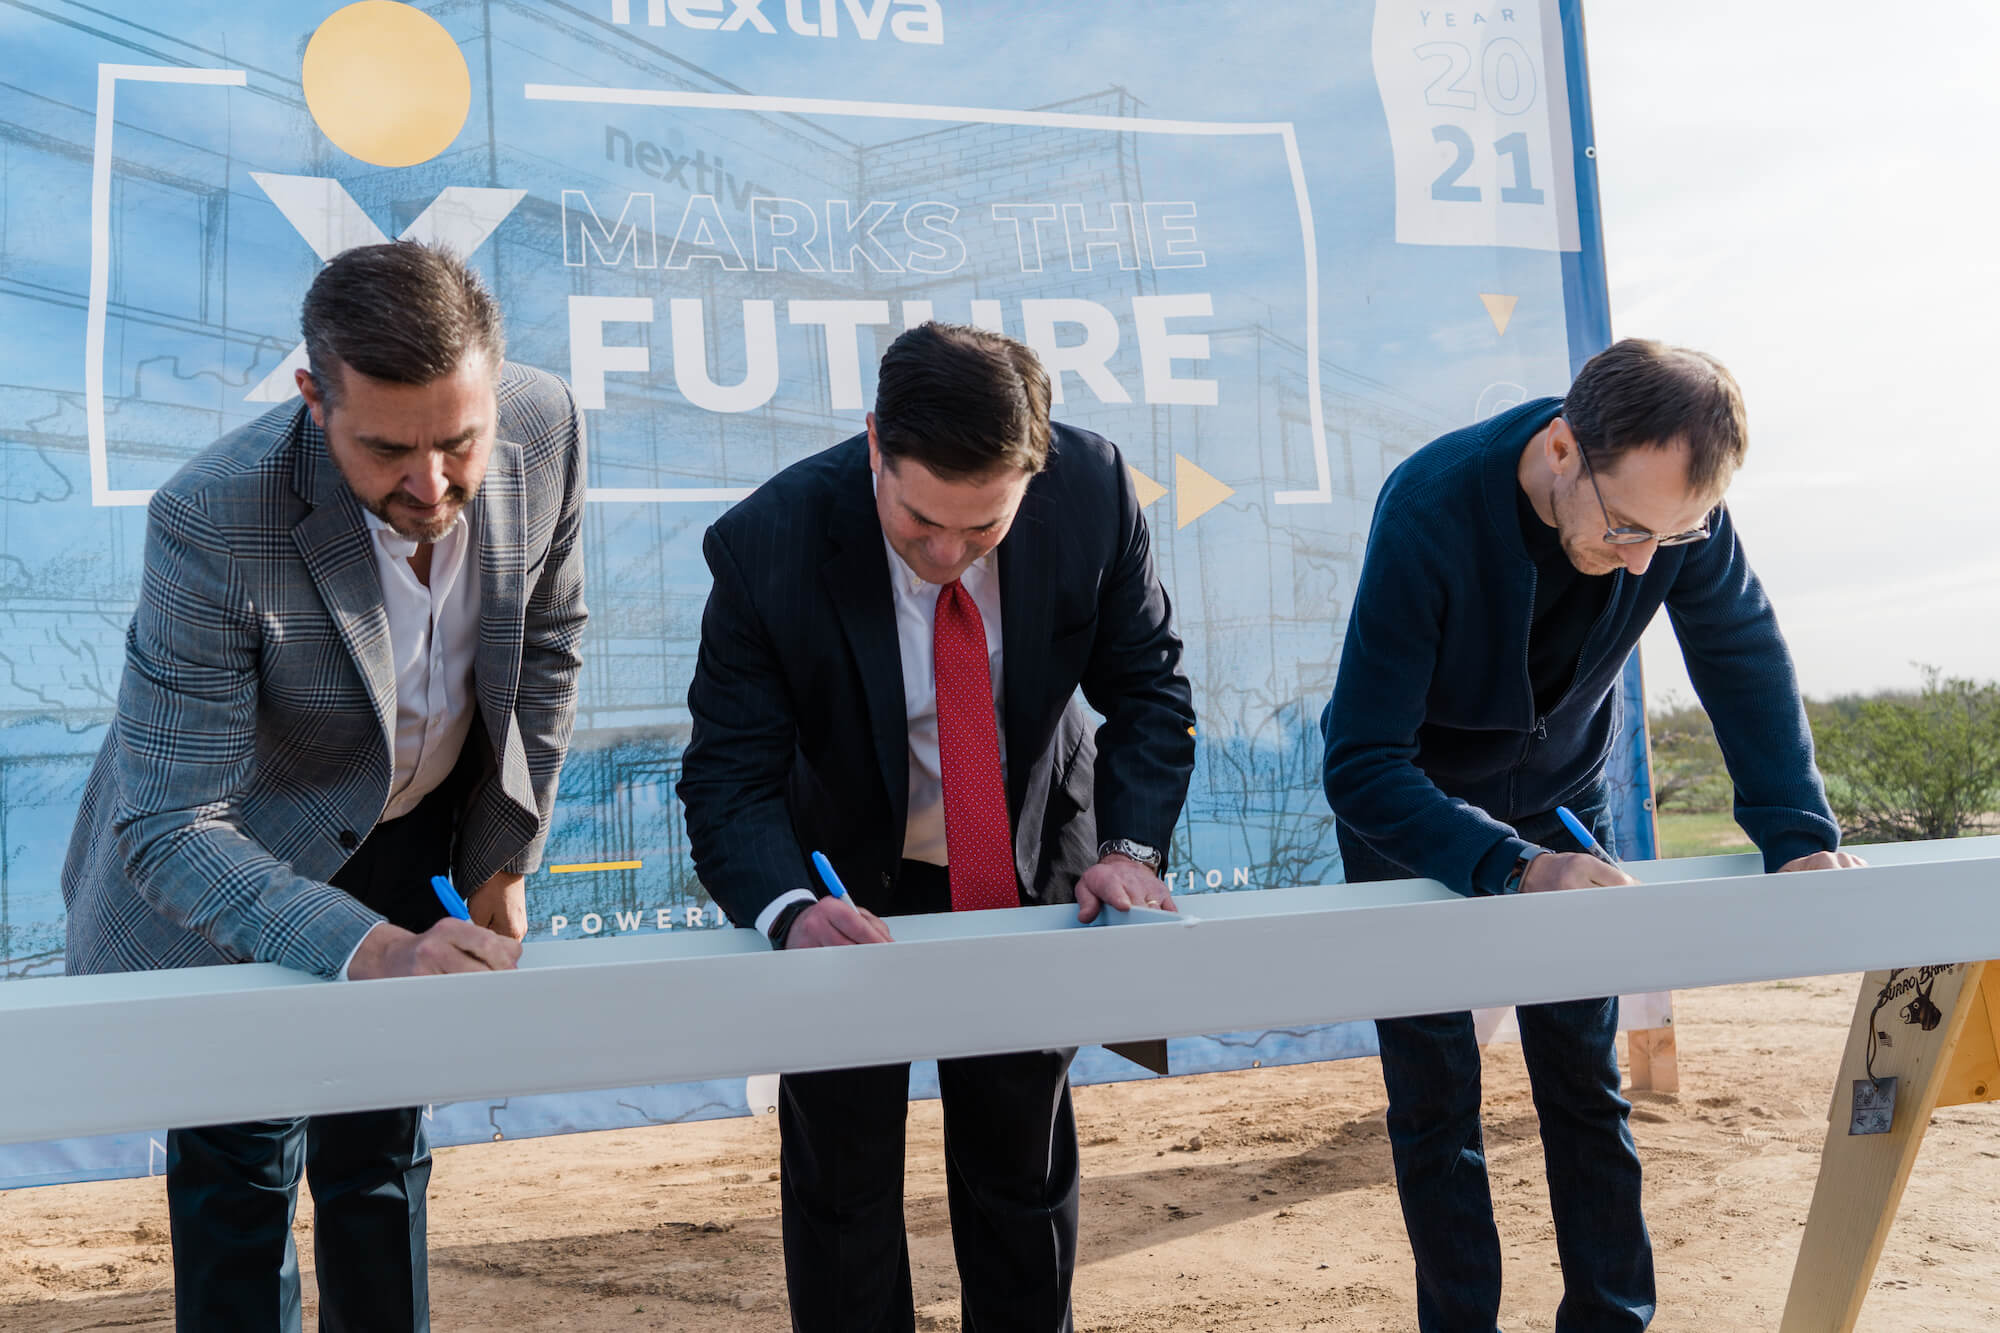 Nextiva Co-Founders and Governor Doug Ducey Sign Iron Beam for New Office in Scottsdale